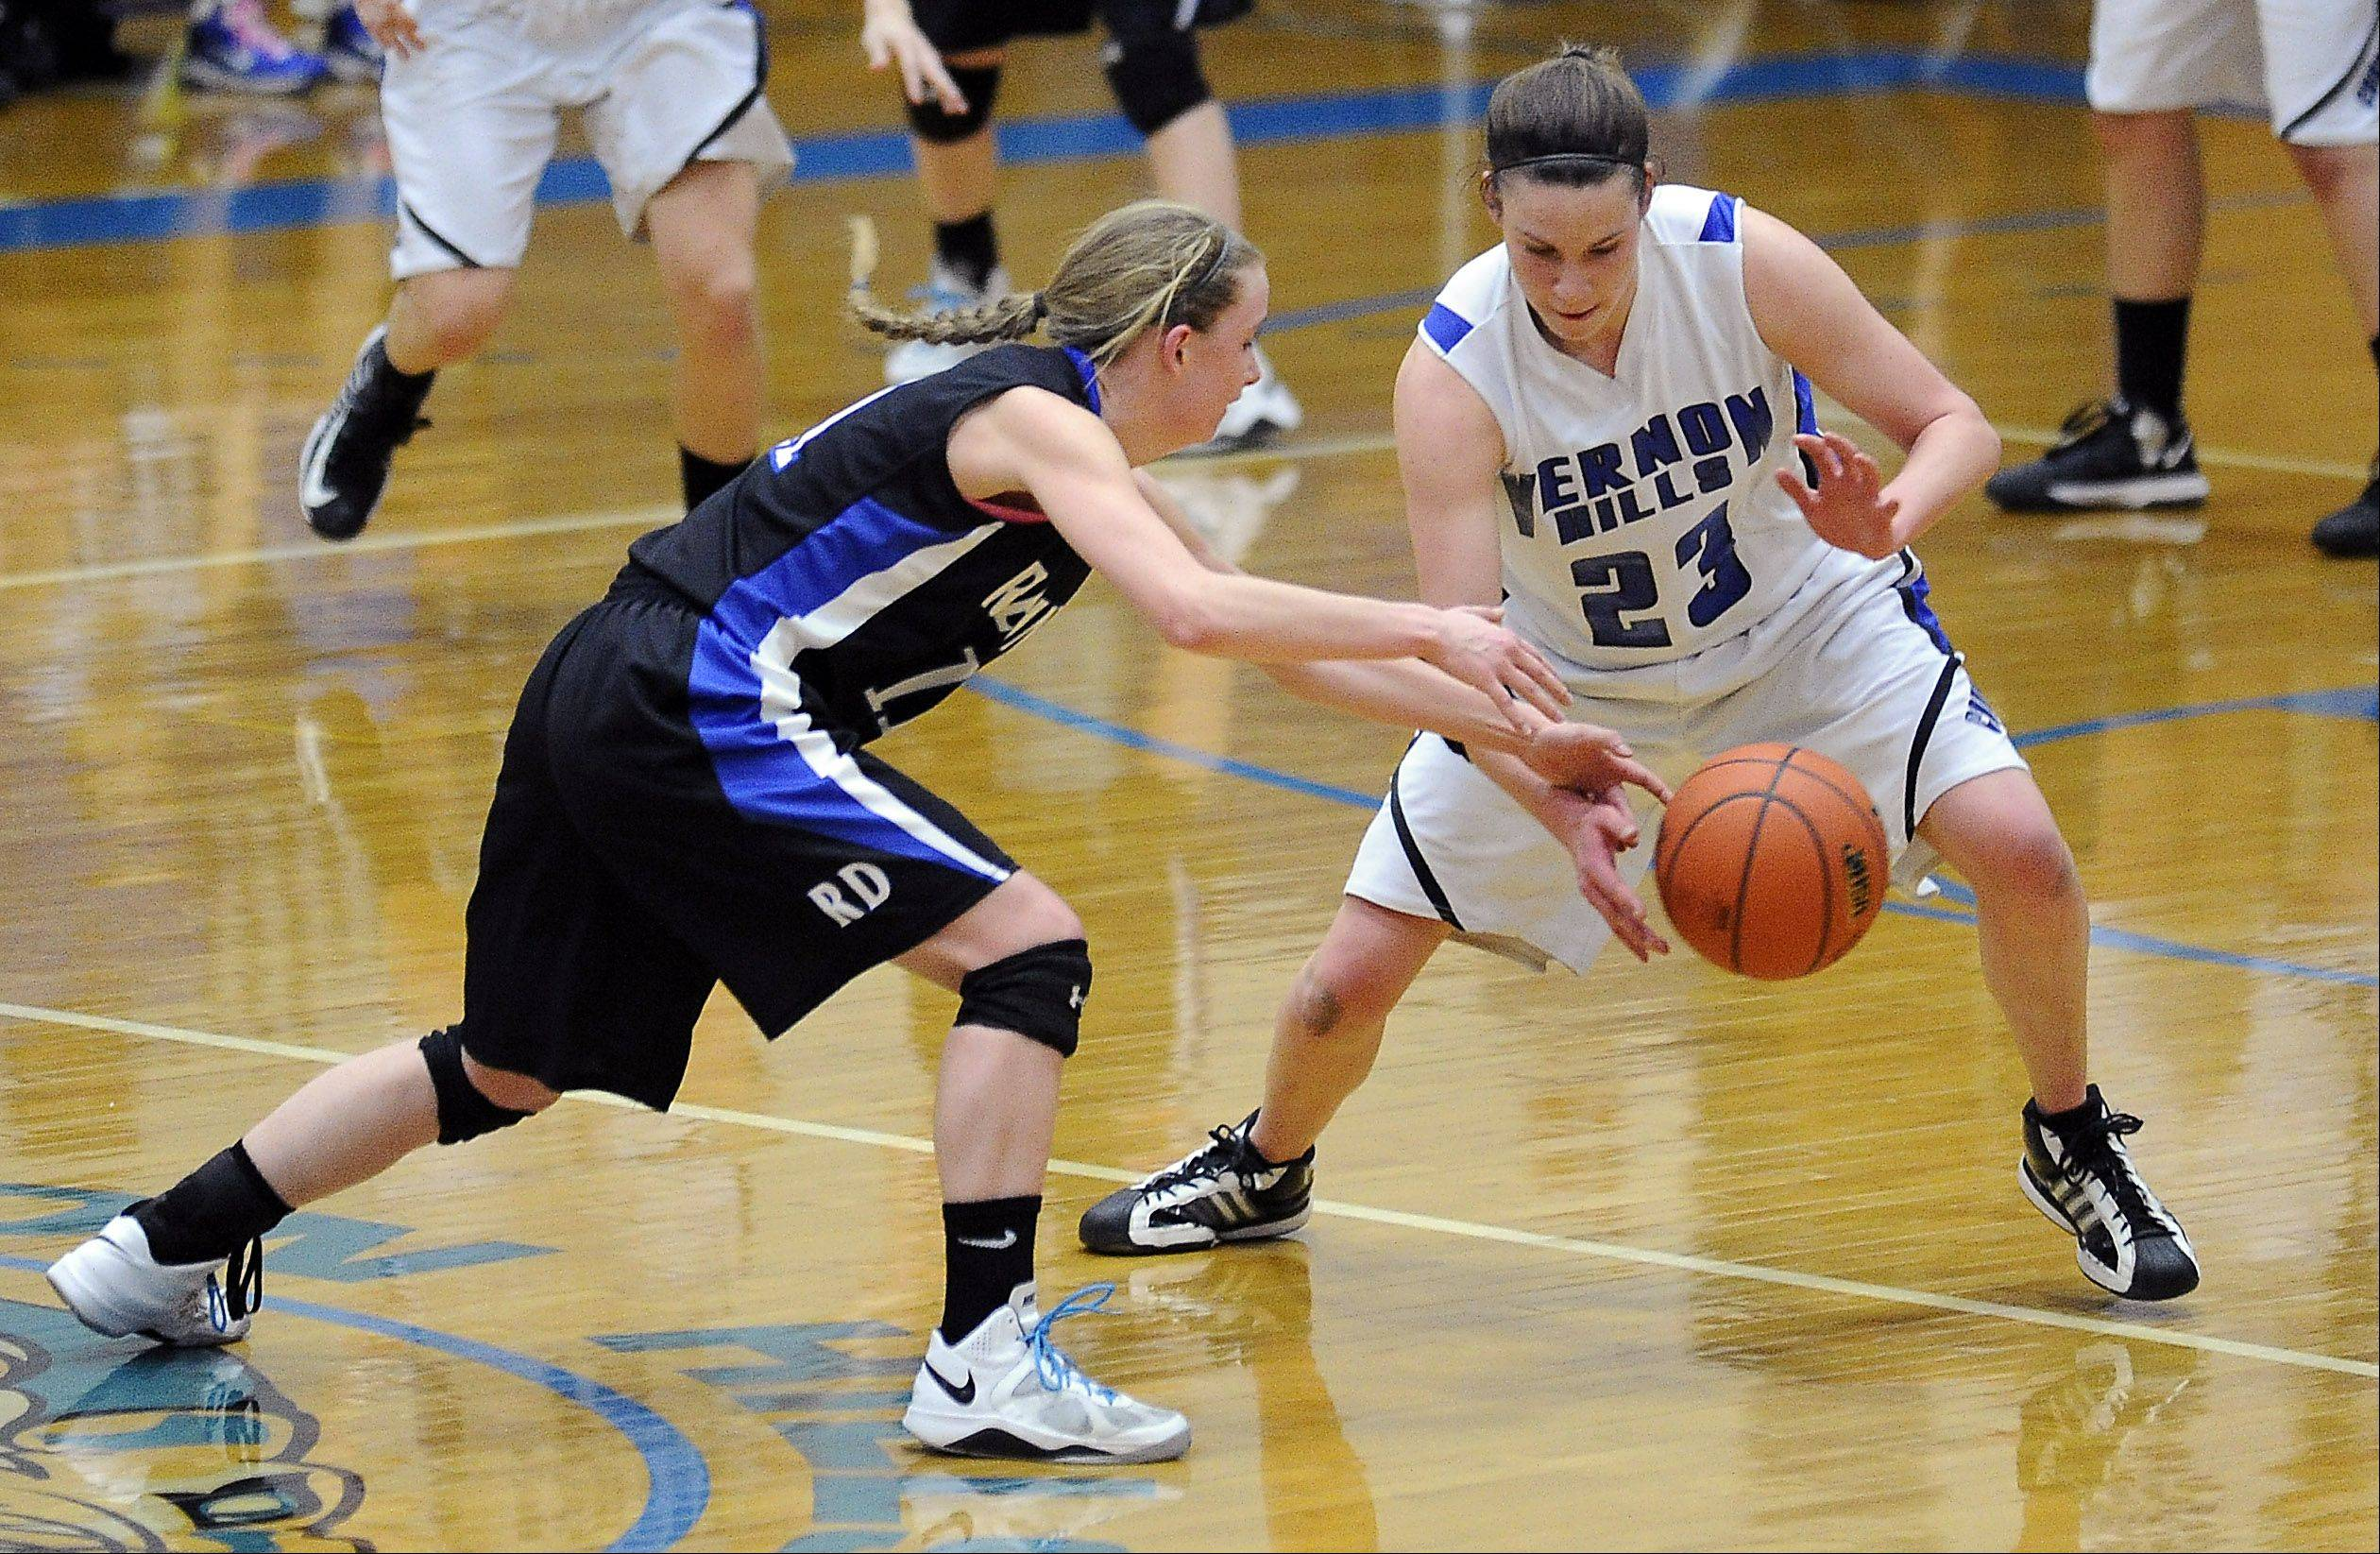 Mark Welsh/mwelsh@dailyherald.comVernon Hills' Brie Bahlmann steals the ball away from Regina Dominican's Lindsey Welch in Class3A sectional final play Thursday at Vernon Hills.